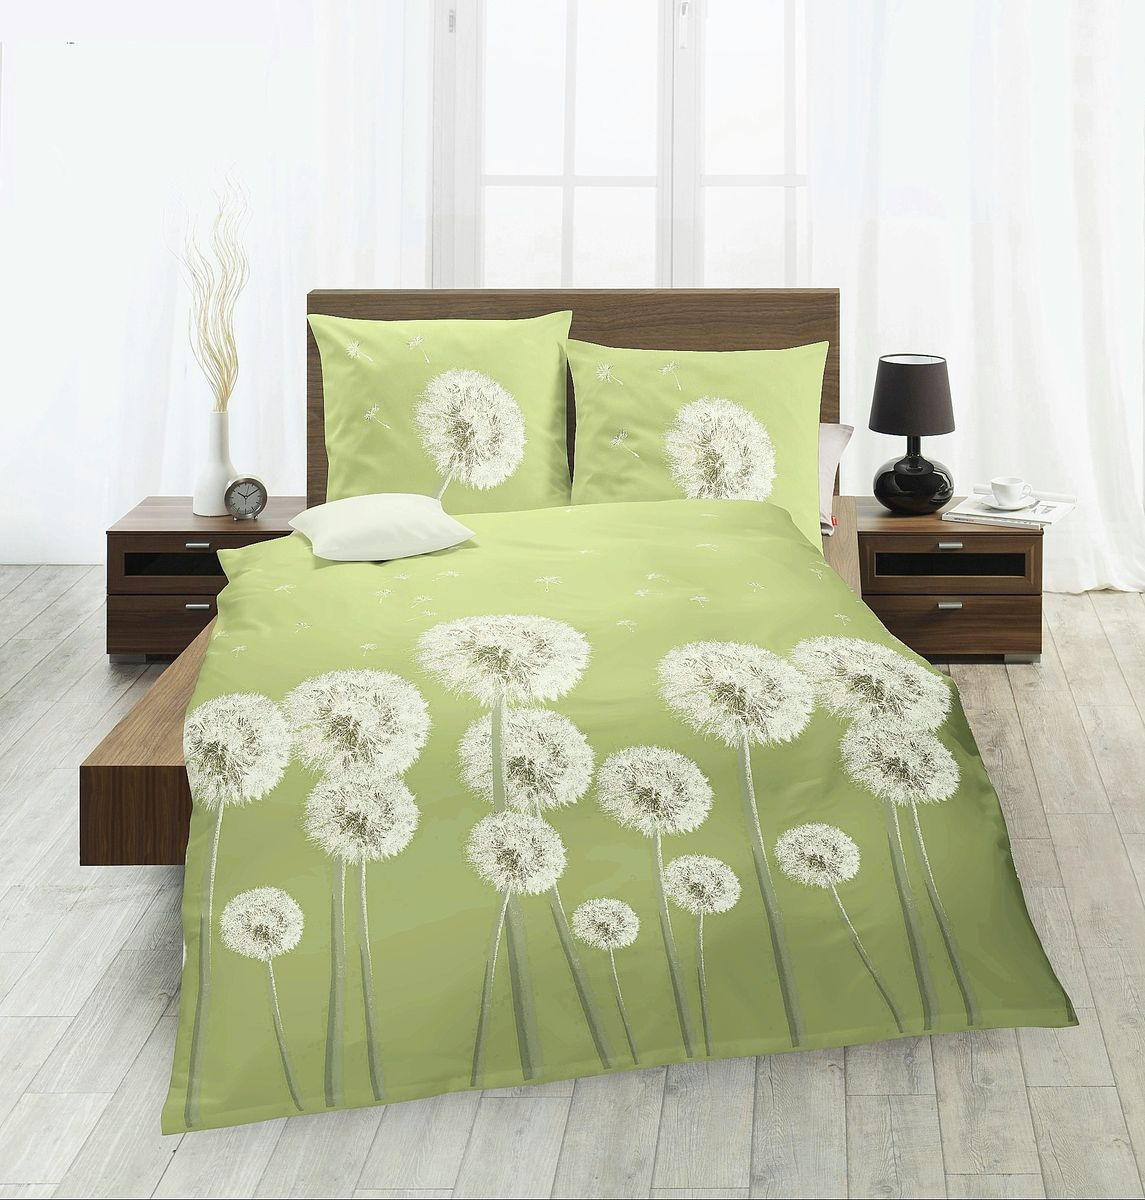 fleuresse riva renforce bettw sche 3 teilig 240x220cm pusteblume blume l wenzahn bettw sche. Black Bedroom Furniture Sets. Home Design Ideas